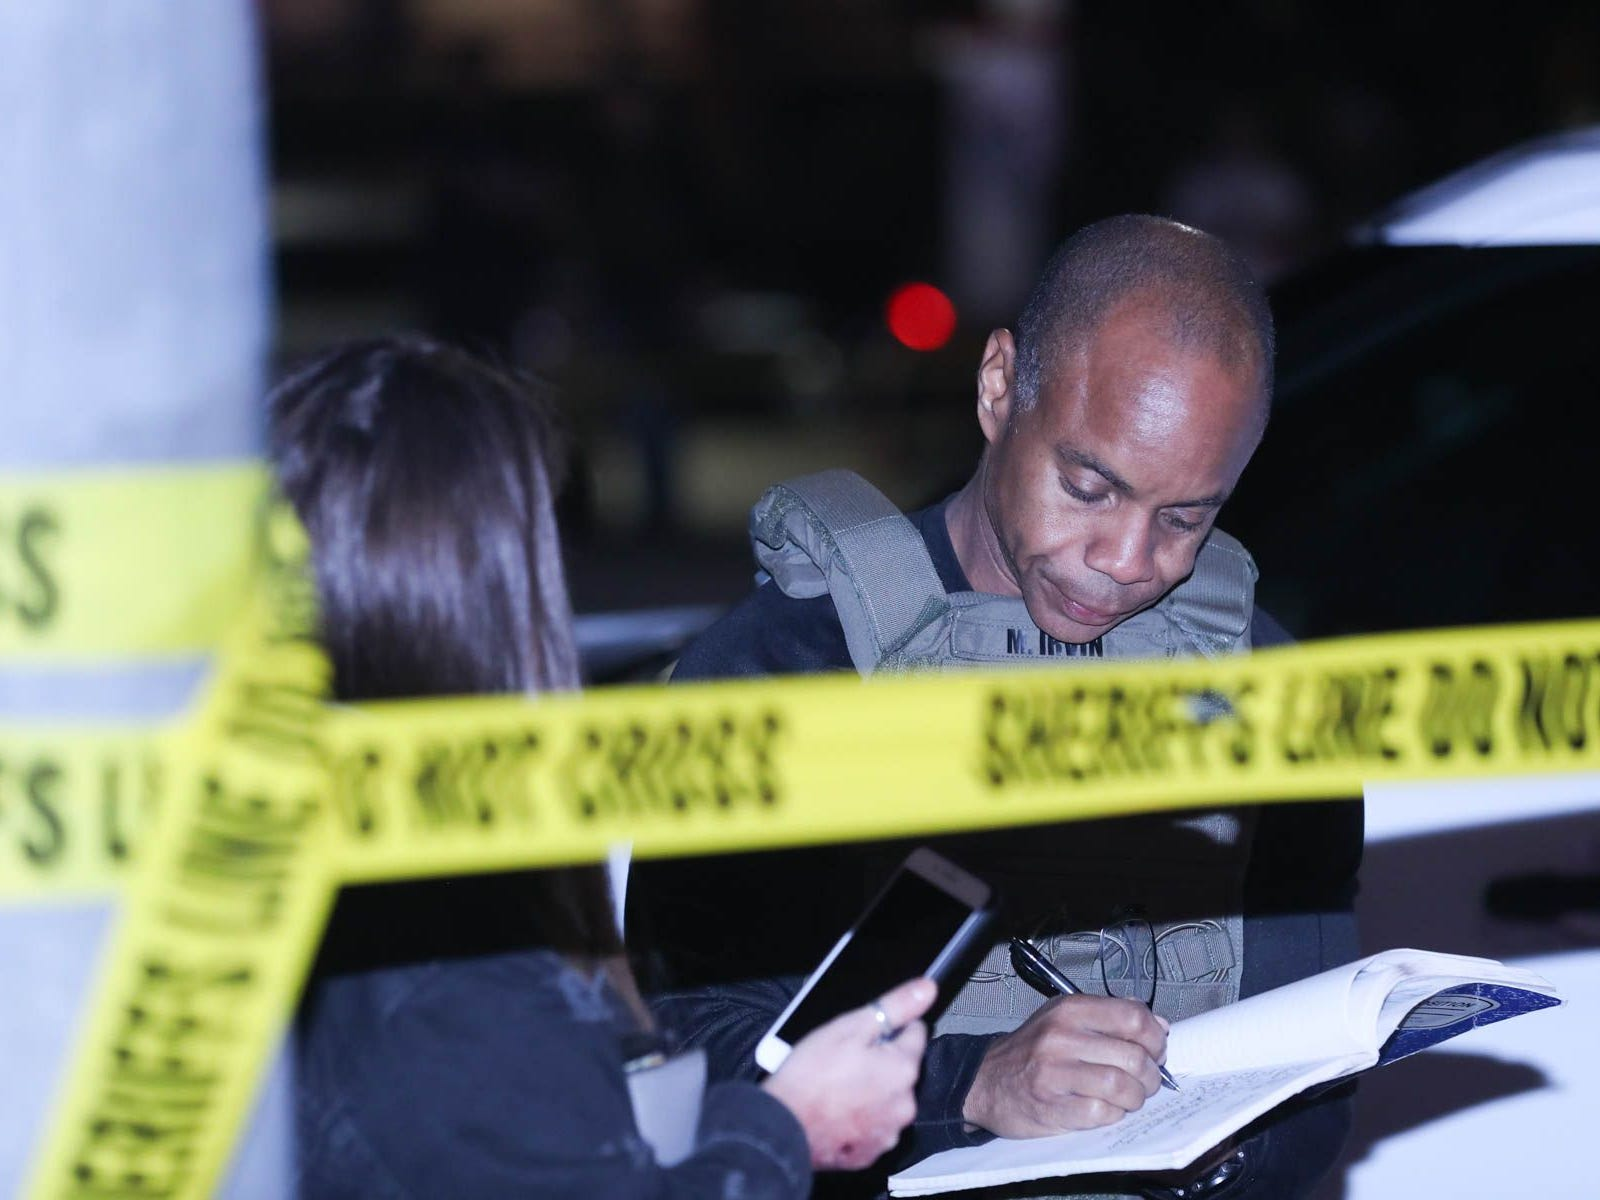 Investigators work at the scene of a mass shooting at the Borderline Bar and Grill in Thousand Oaks, Calif., Nov. 8, 2018.